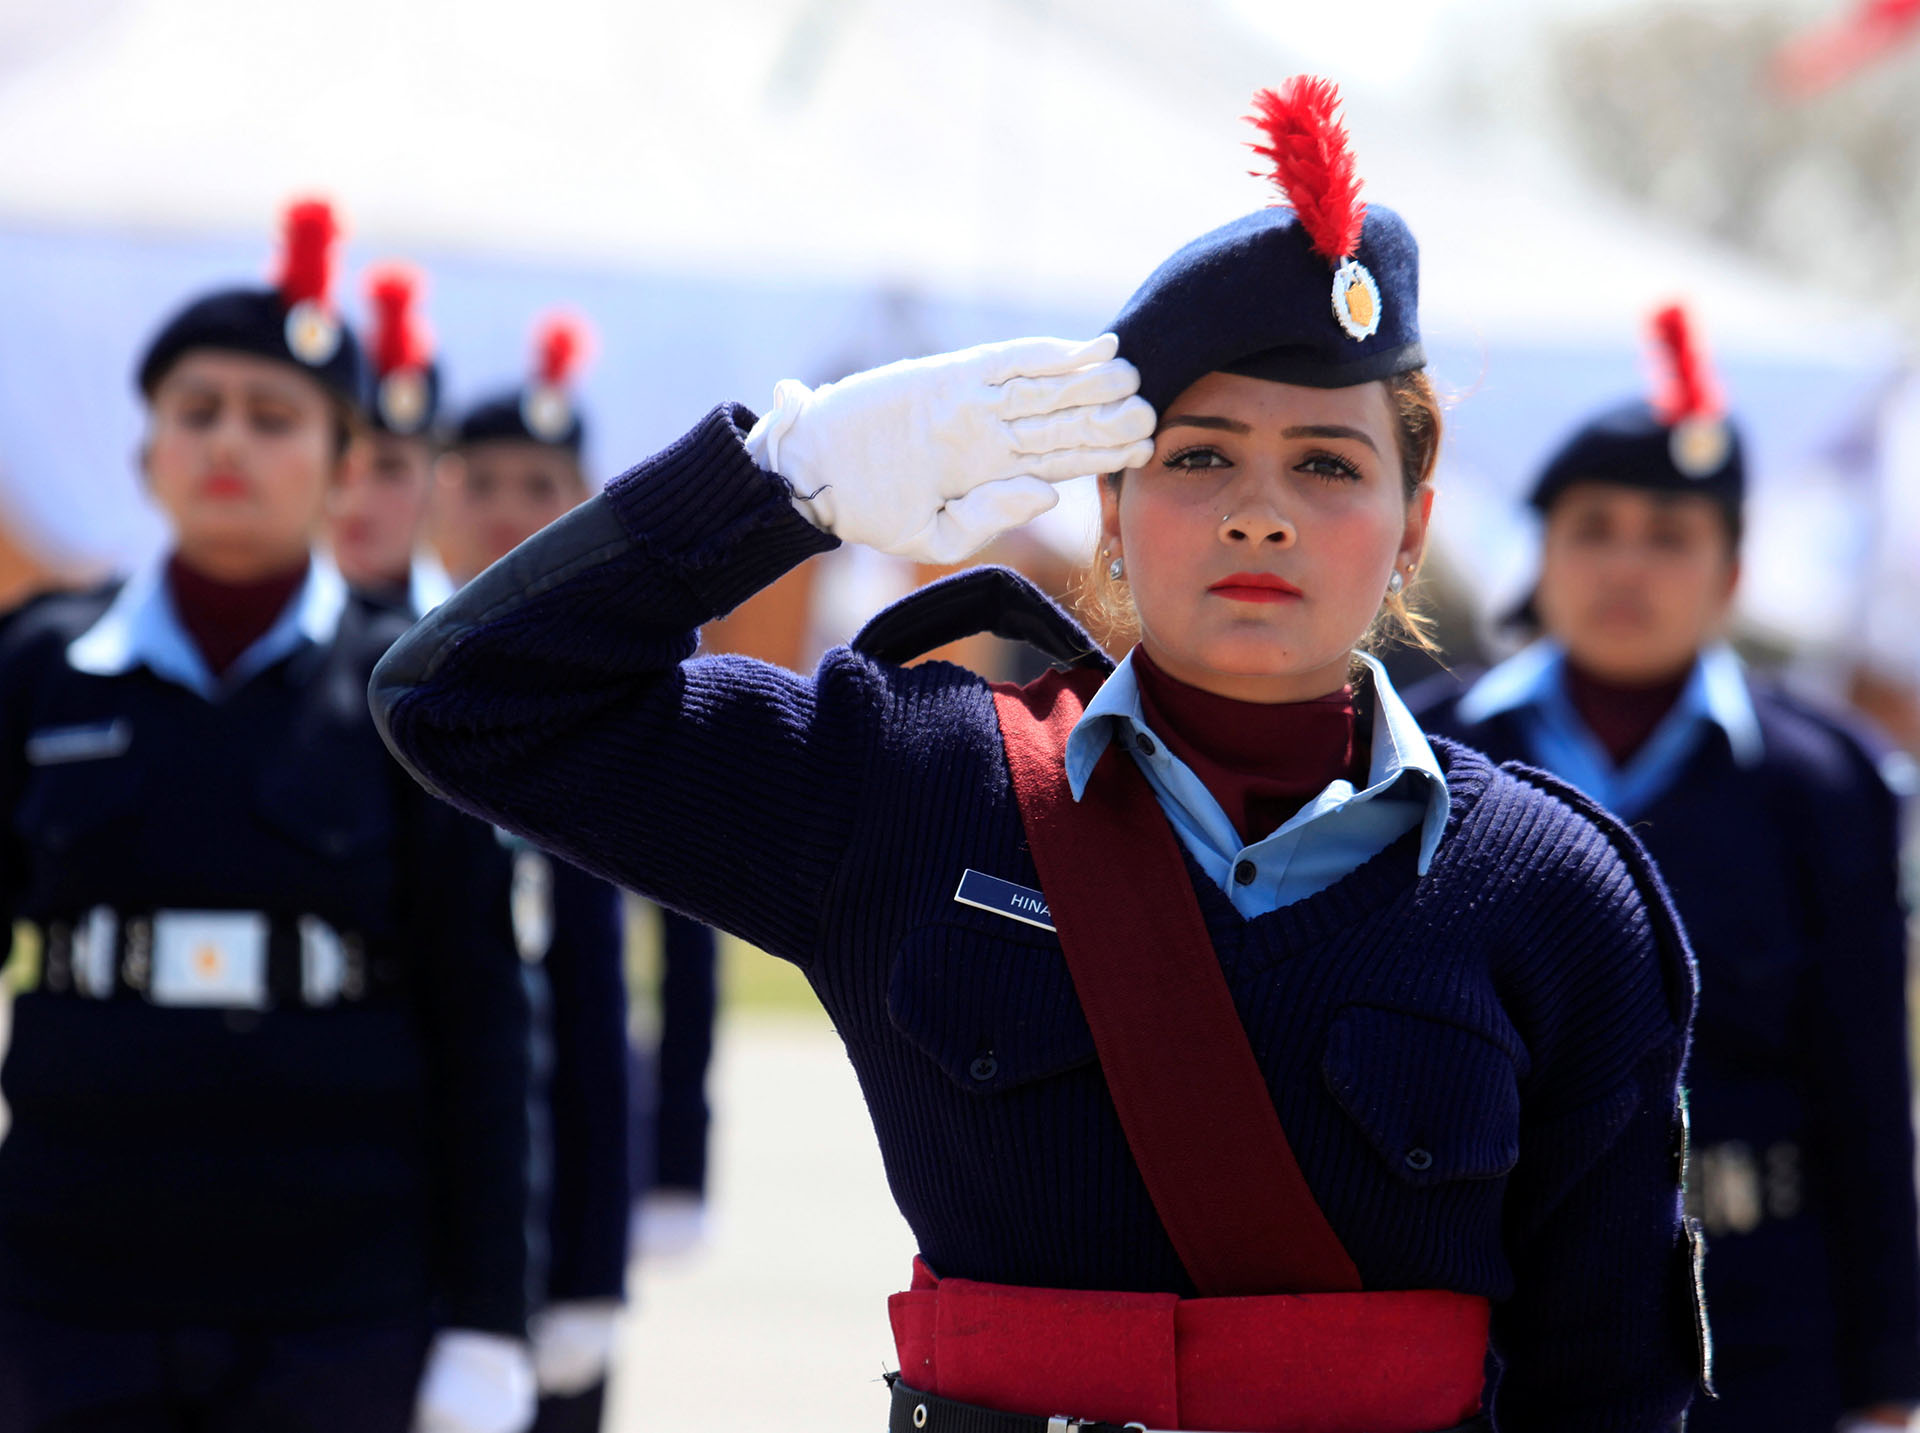 Female members of police forces take part in a ceremony on International Women's Day, at the police headquarters in Islamabad